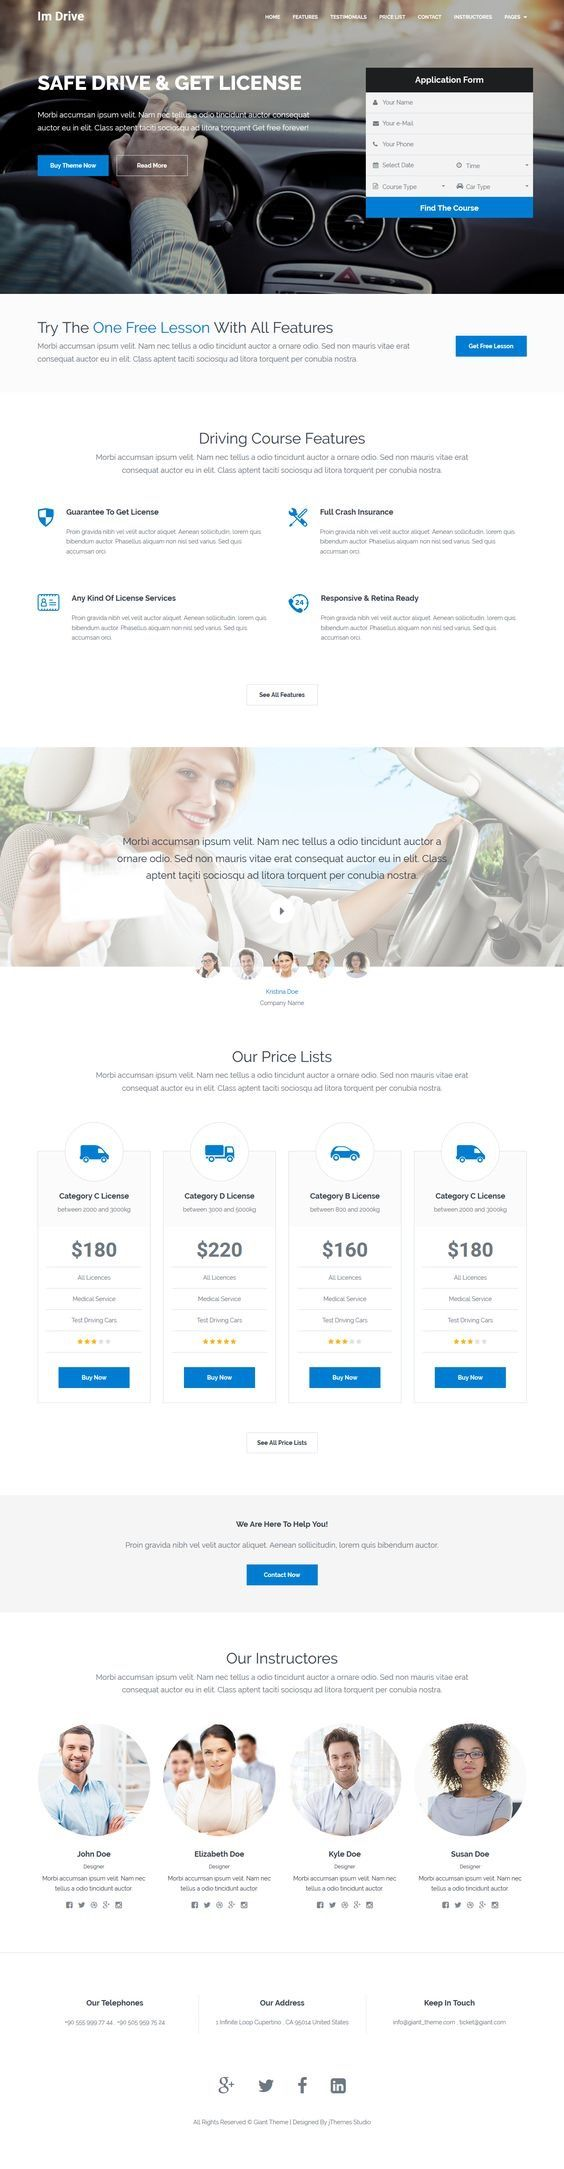 Im-Drive Driving Classes, Courses Landing Page Template. Download: https://themeforest.net/item/imdrive-driving-classes-courses-landing-page-template/16563526?ref=skarin